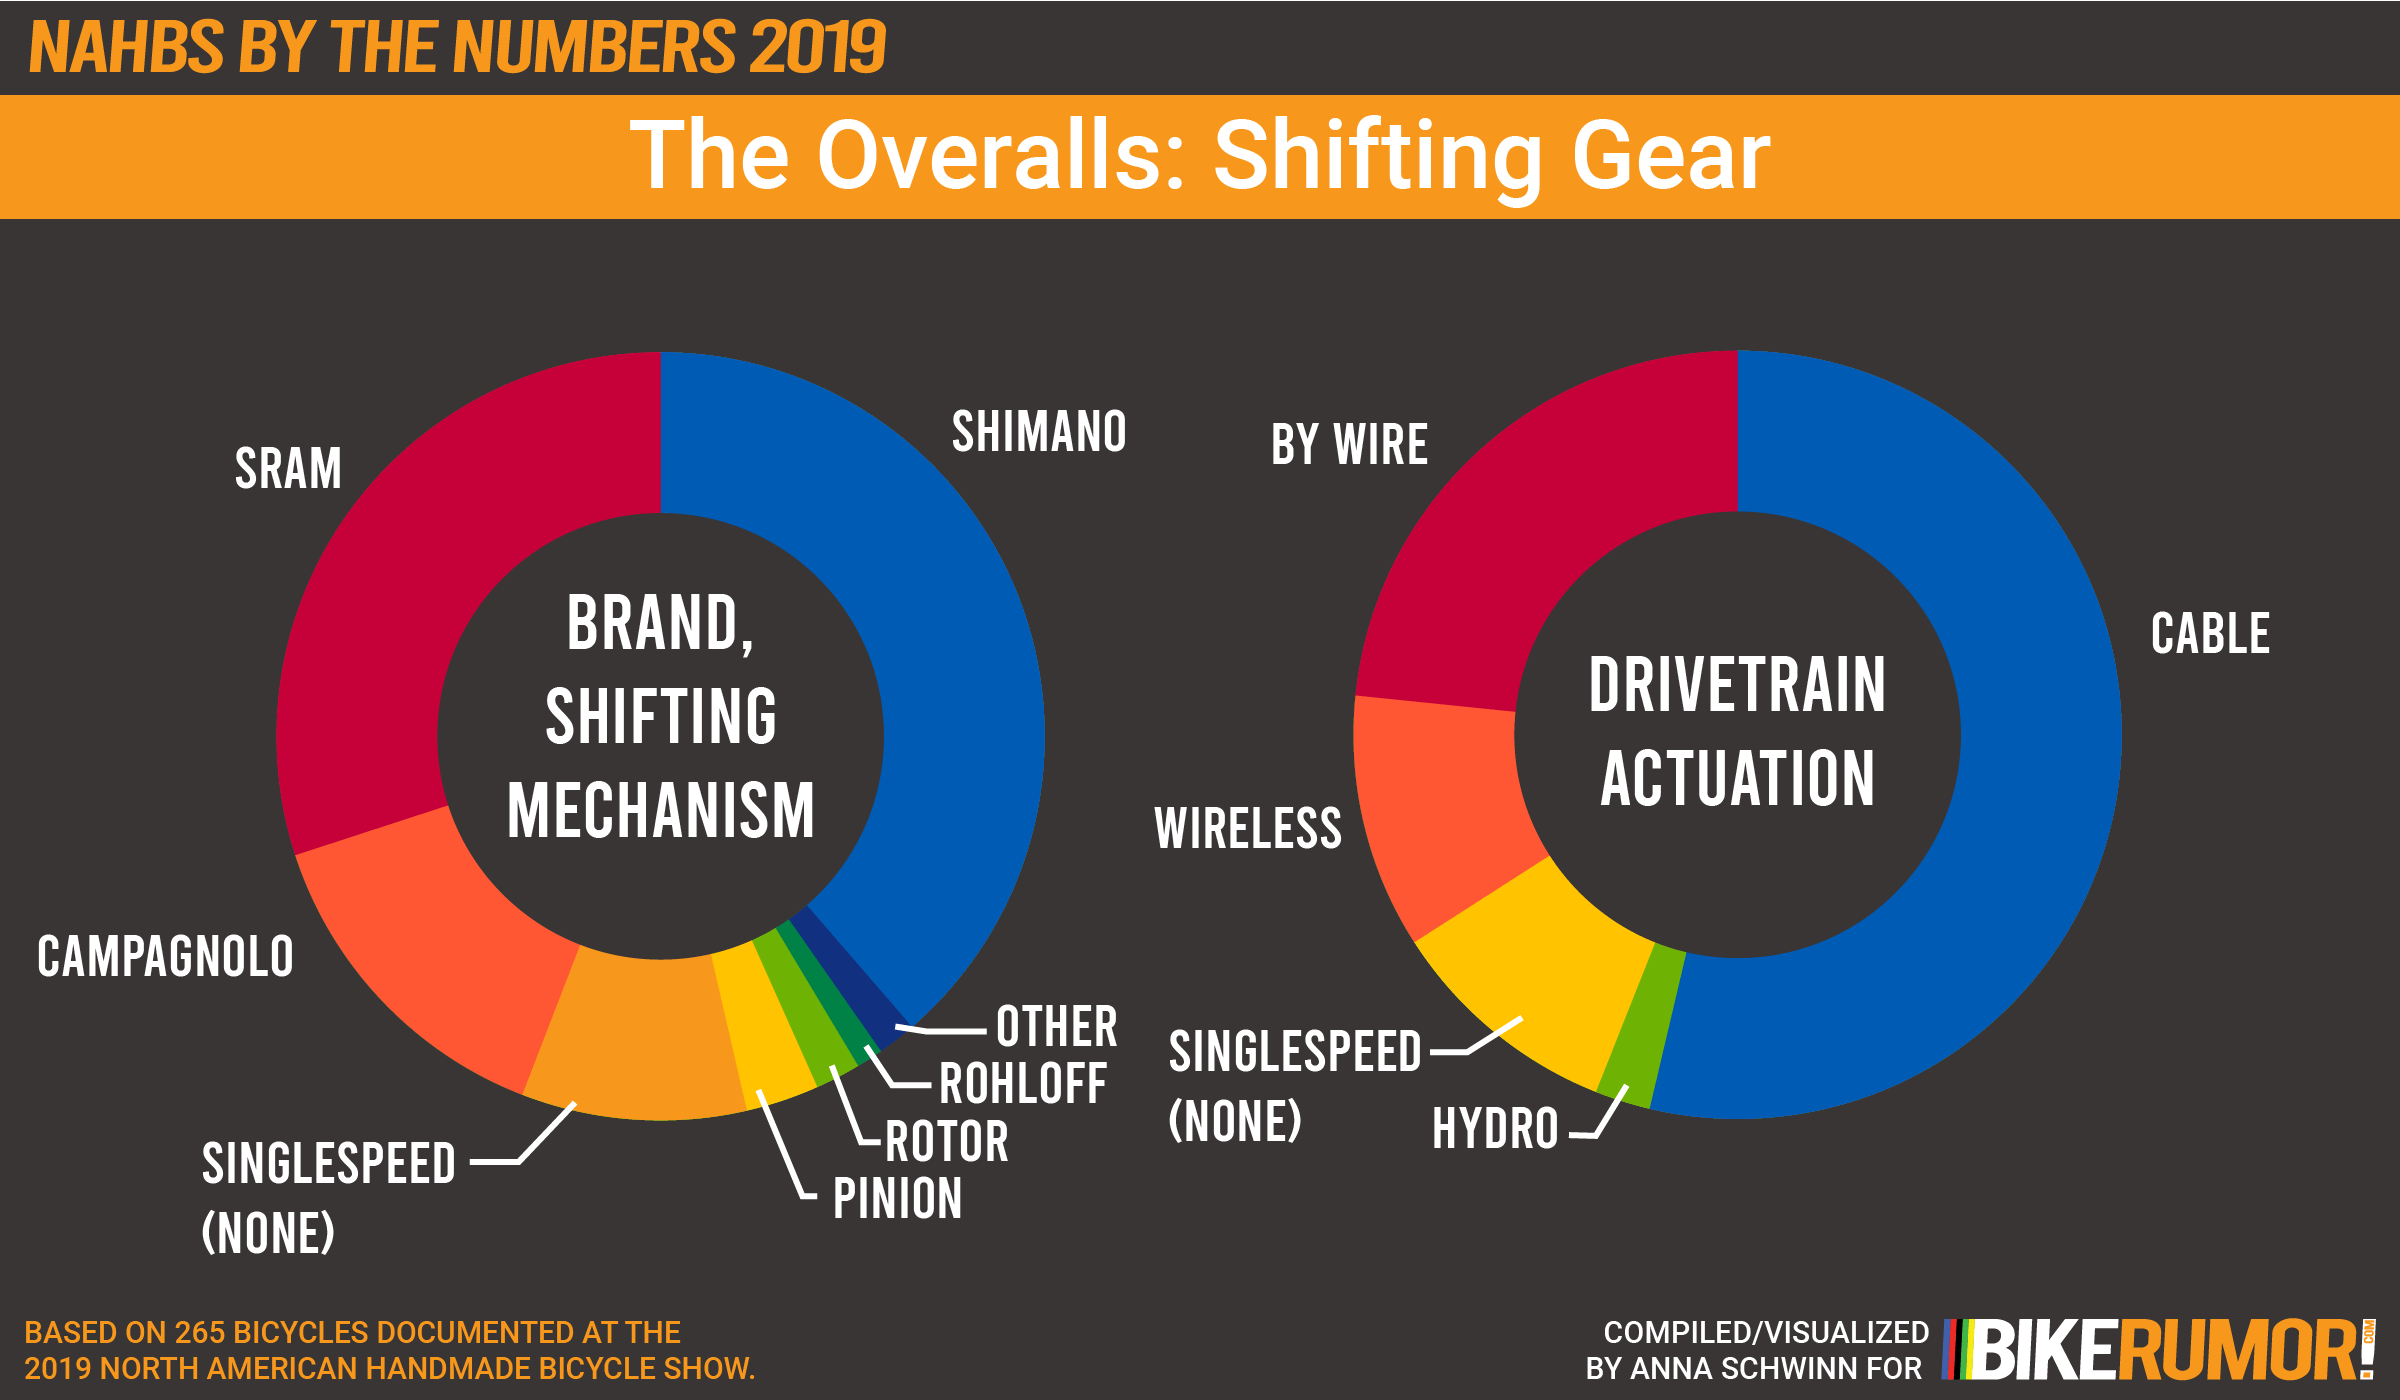 NAHBS By The Numbers 2019, The Overalls, Shifting Gear